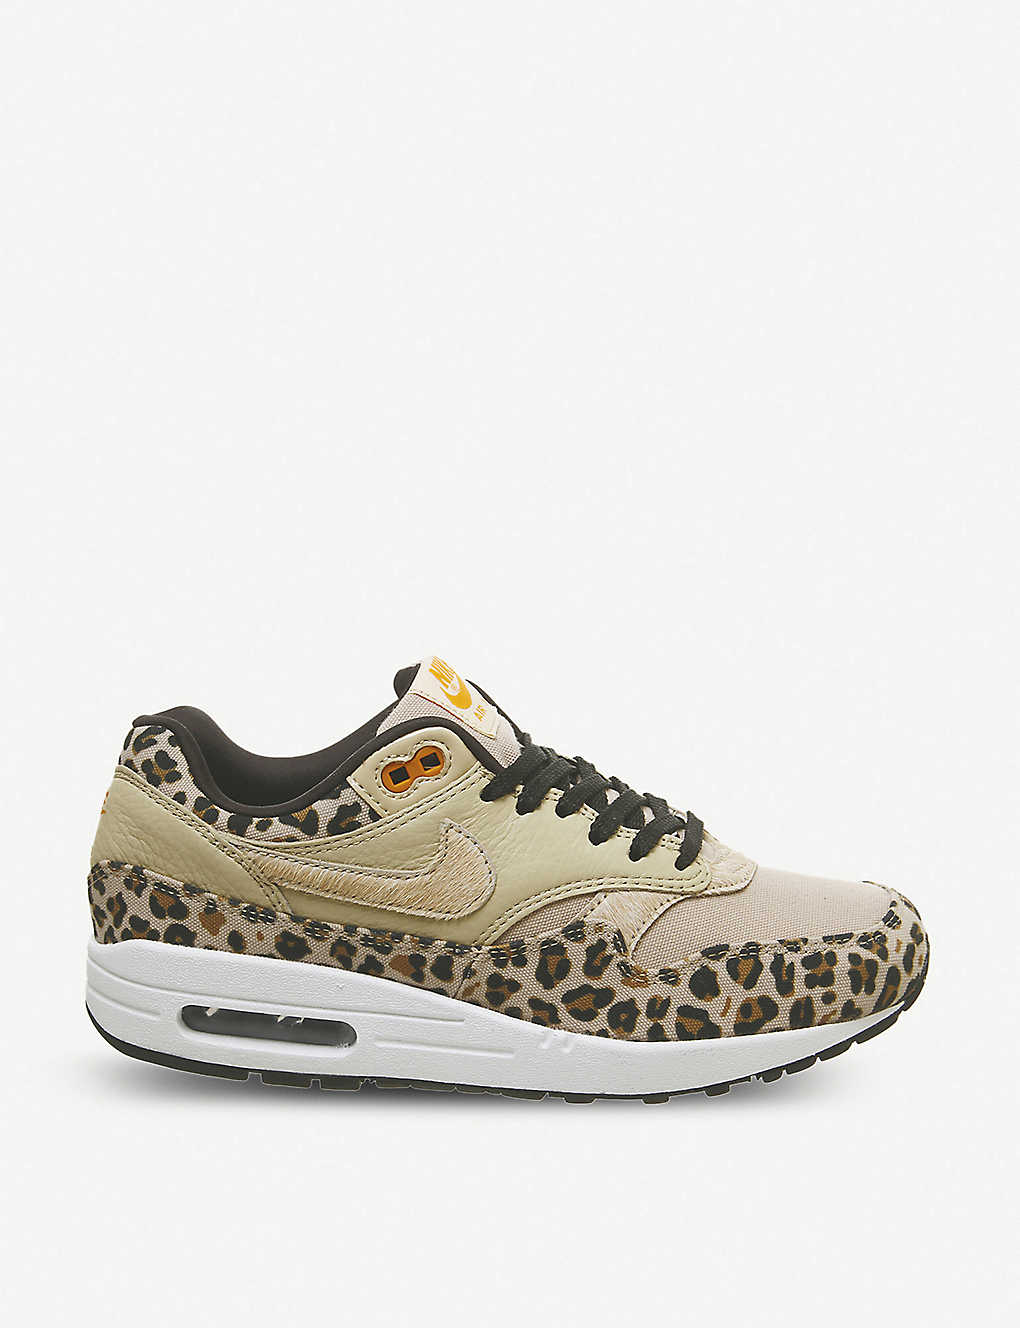 4479187e487bb NIKE - Air Max 1 leather and textile sneakers